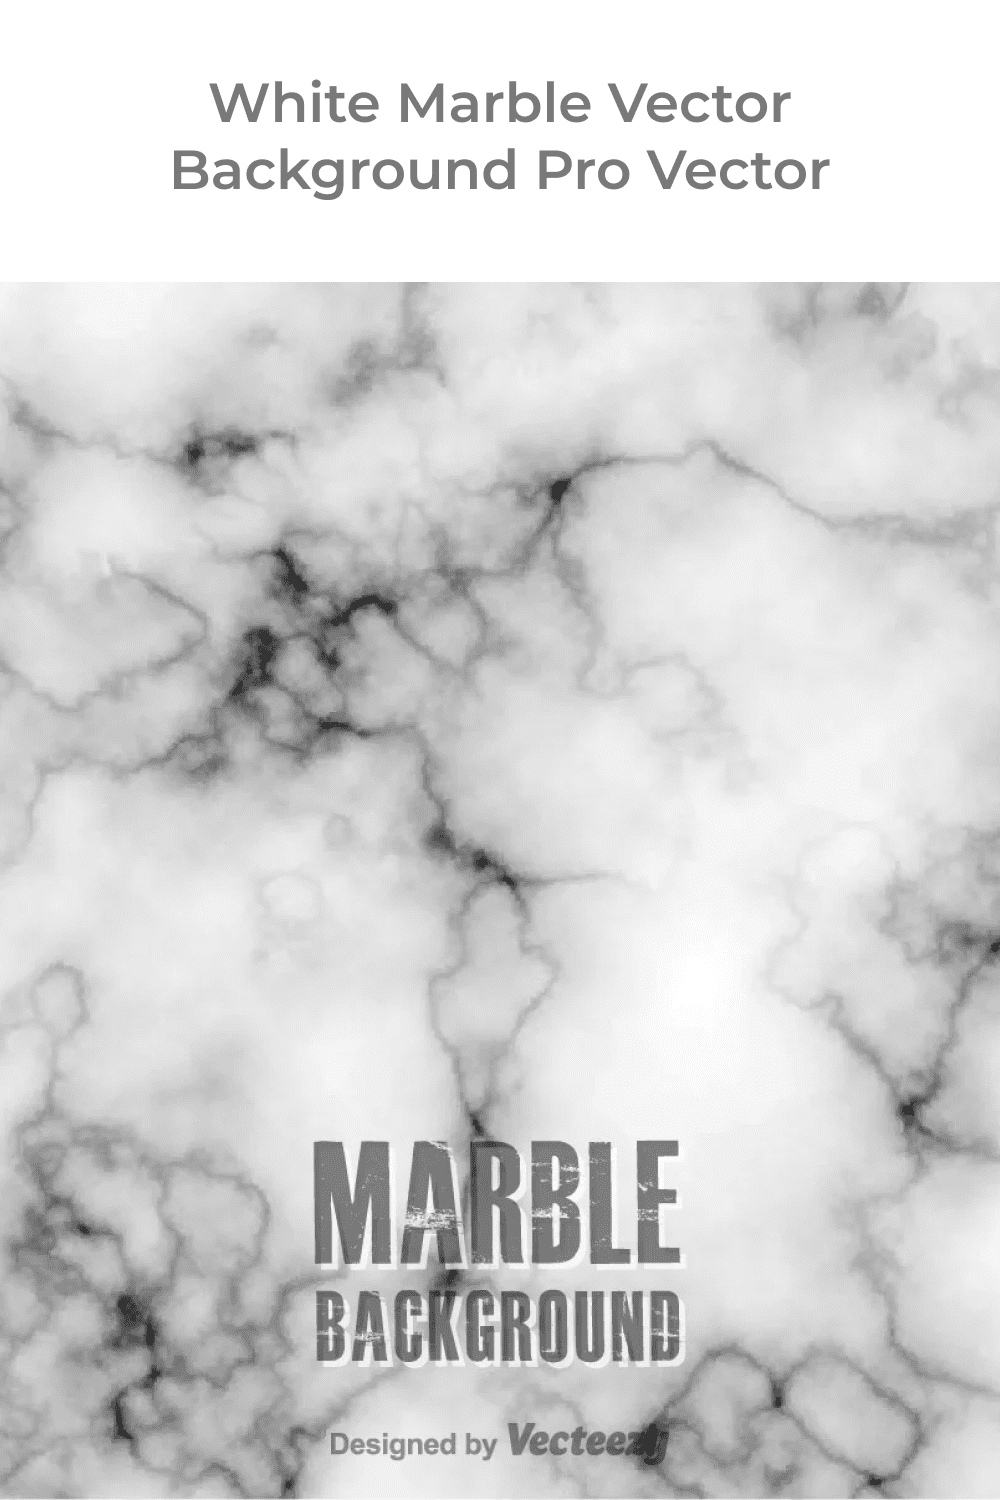 White marble vector background.